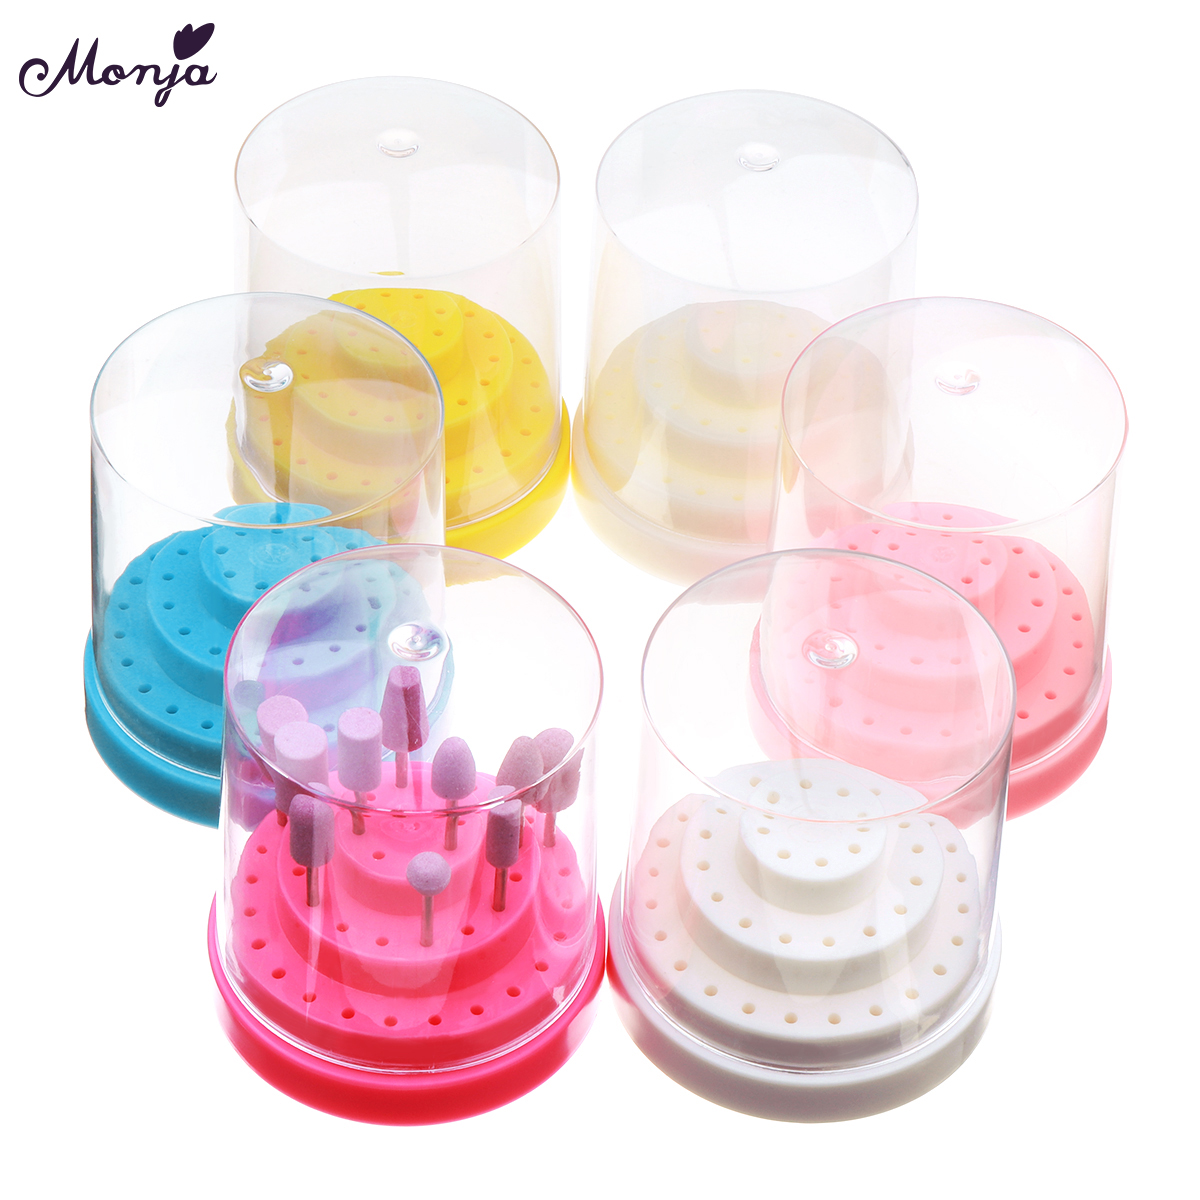 Monja Nail Art 48 Holes Large Nail Drill Bit Storage Box Nail Drill Holder Display Stand Organizer Container Case Manicure Tools